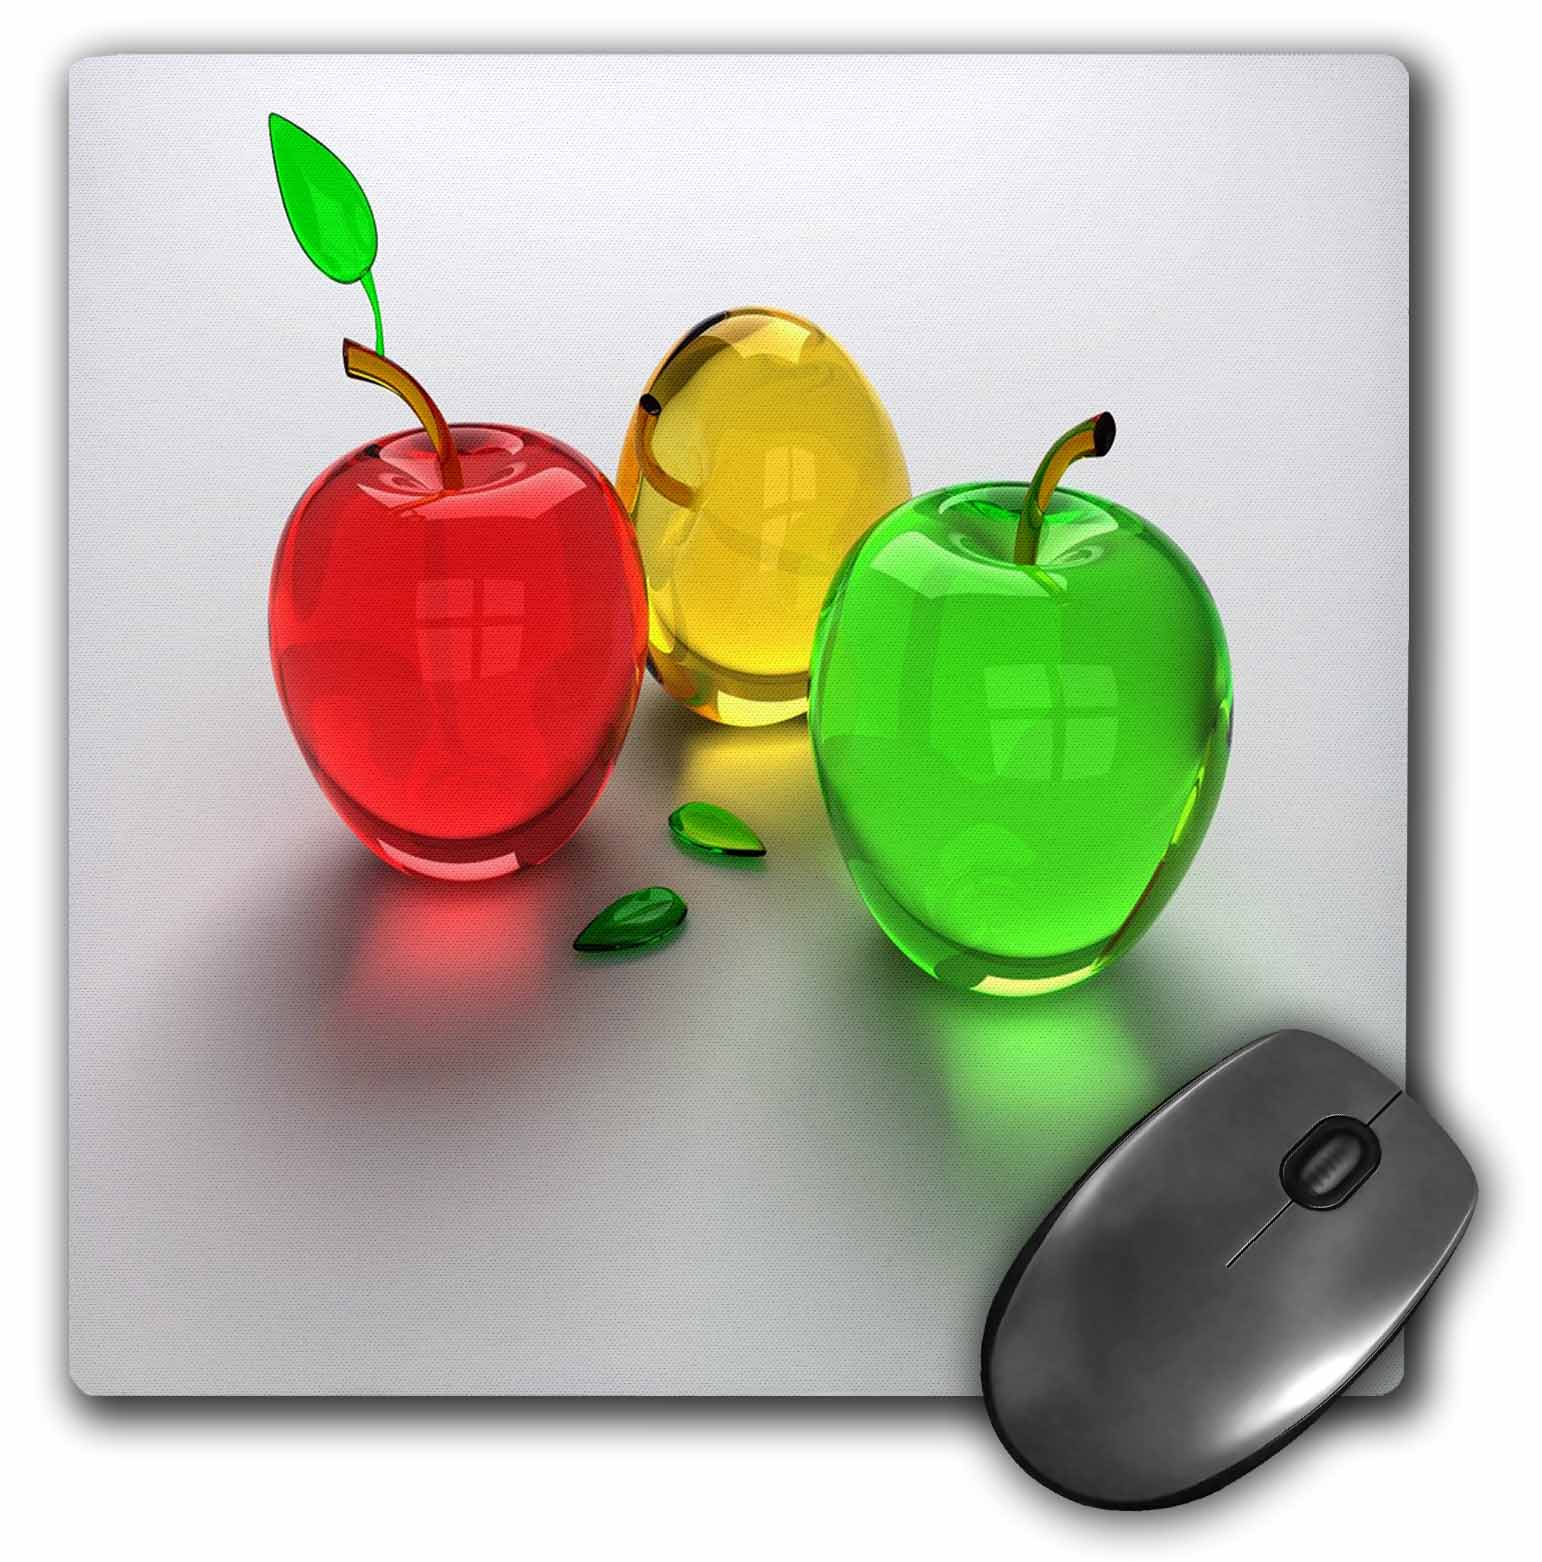 3dRose Glass Apples In Red Yellow n Green, Mouse Pad, 8 by 8 inches